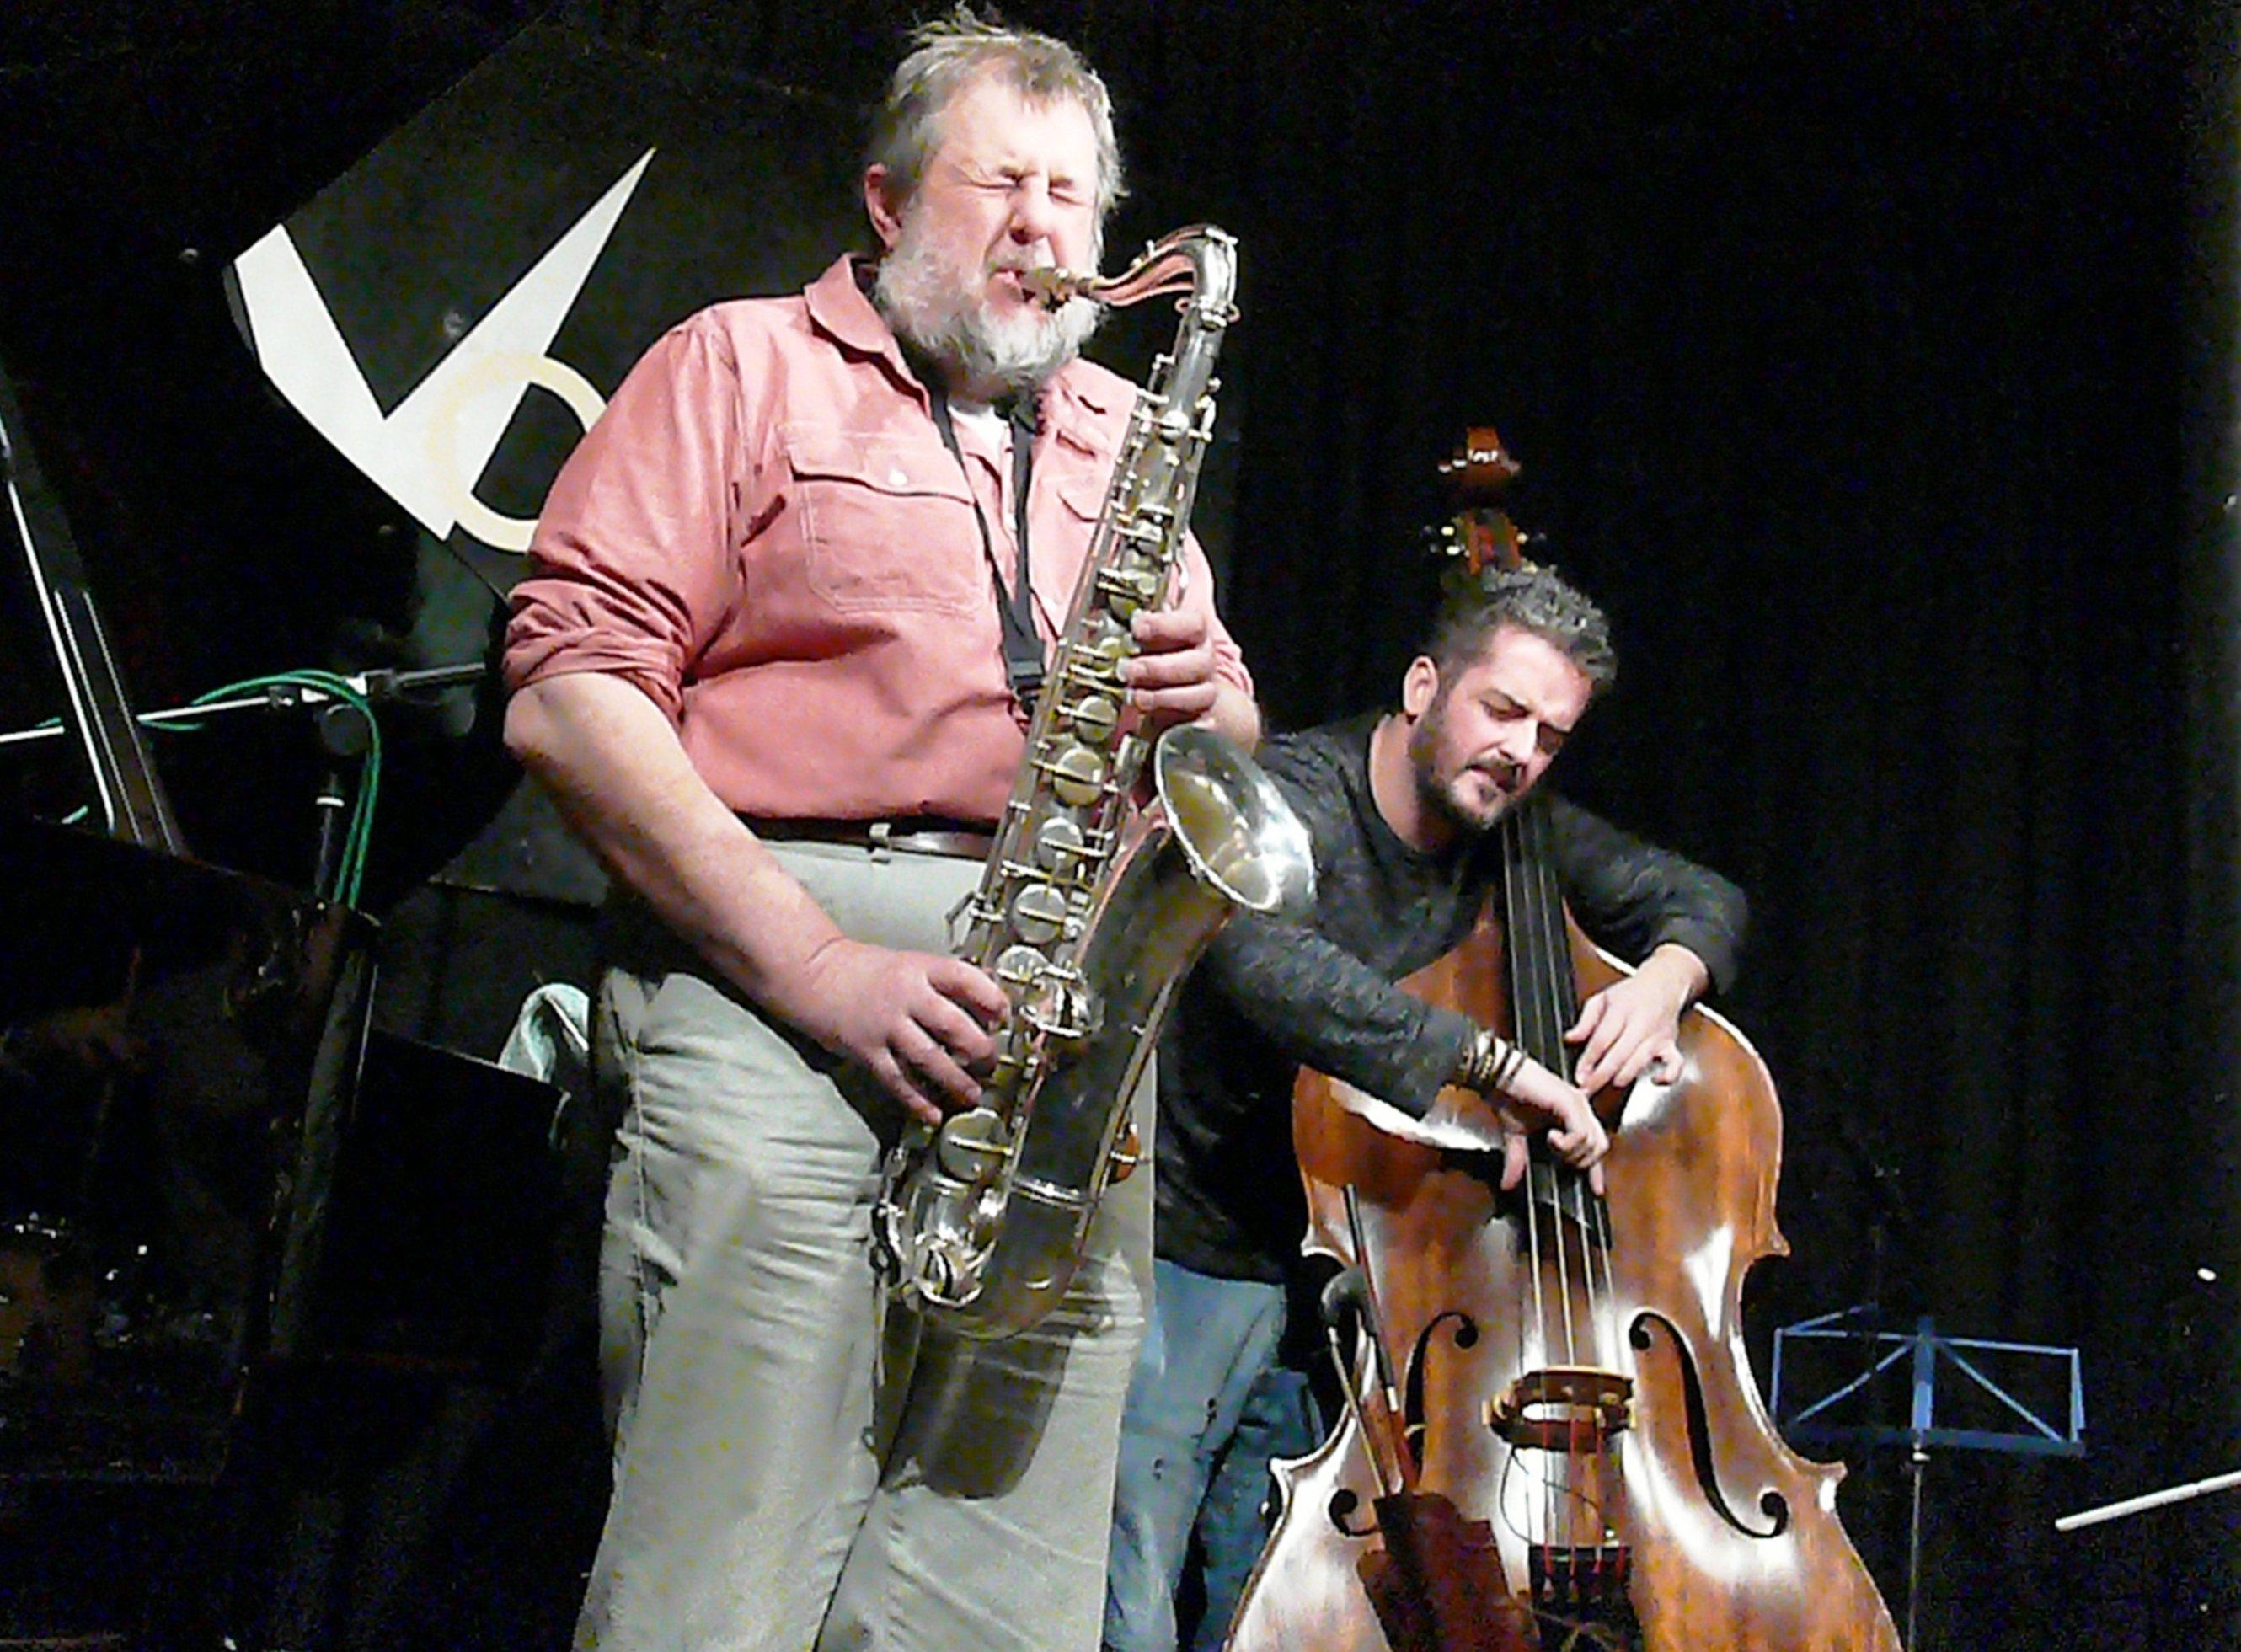 Paul Dunmall and Dave Kane at the Vortex, London in January 2012